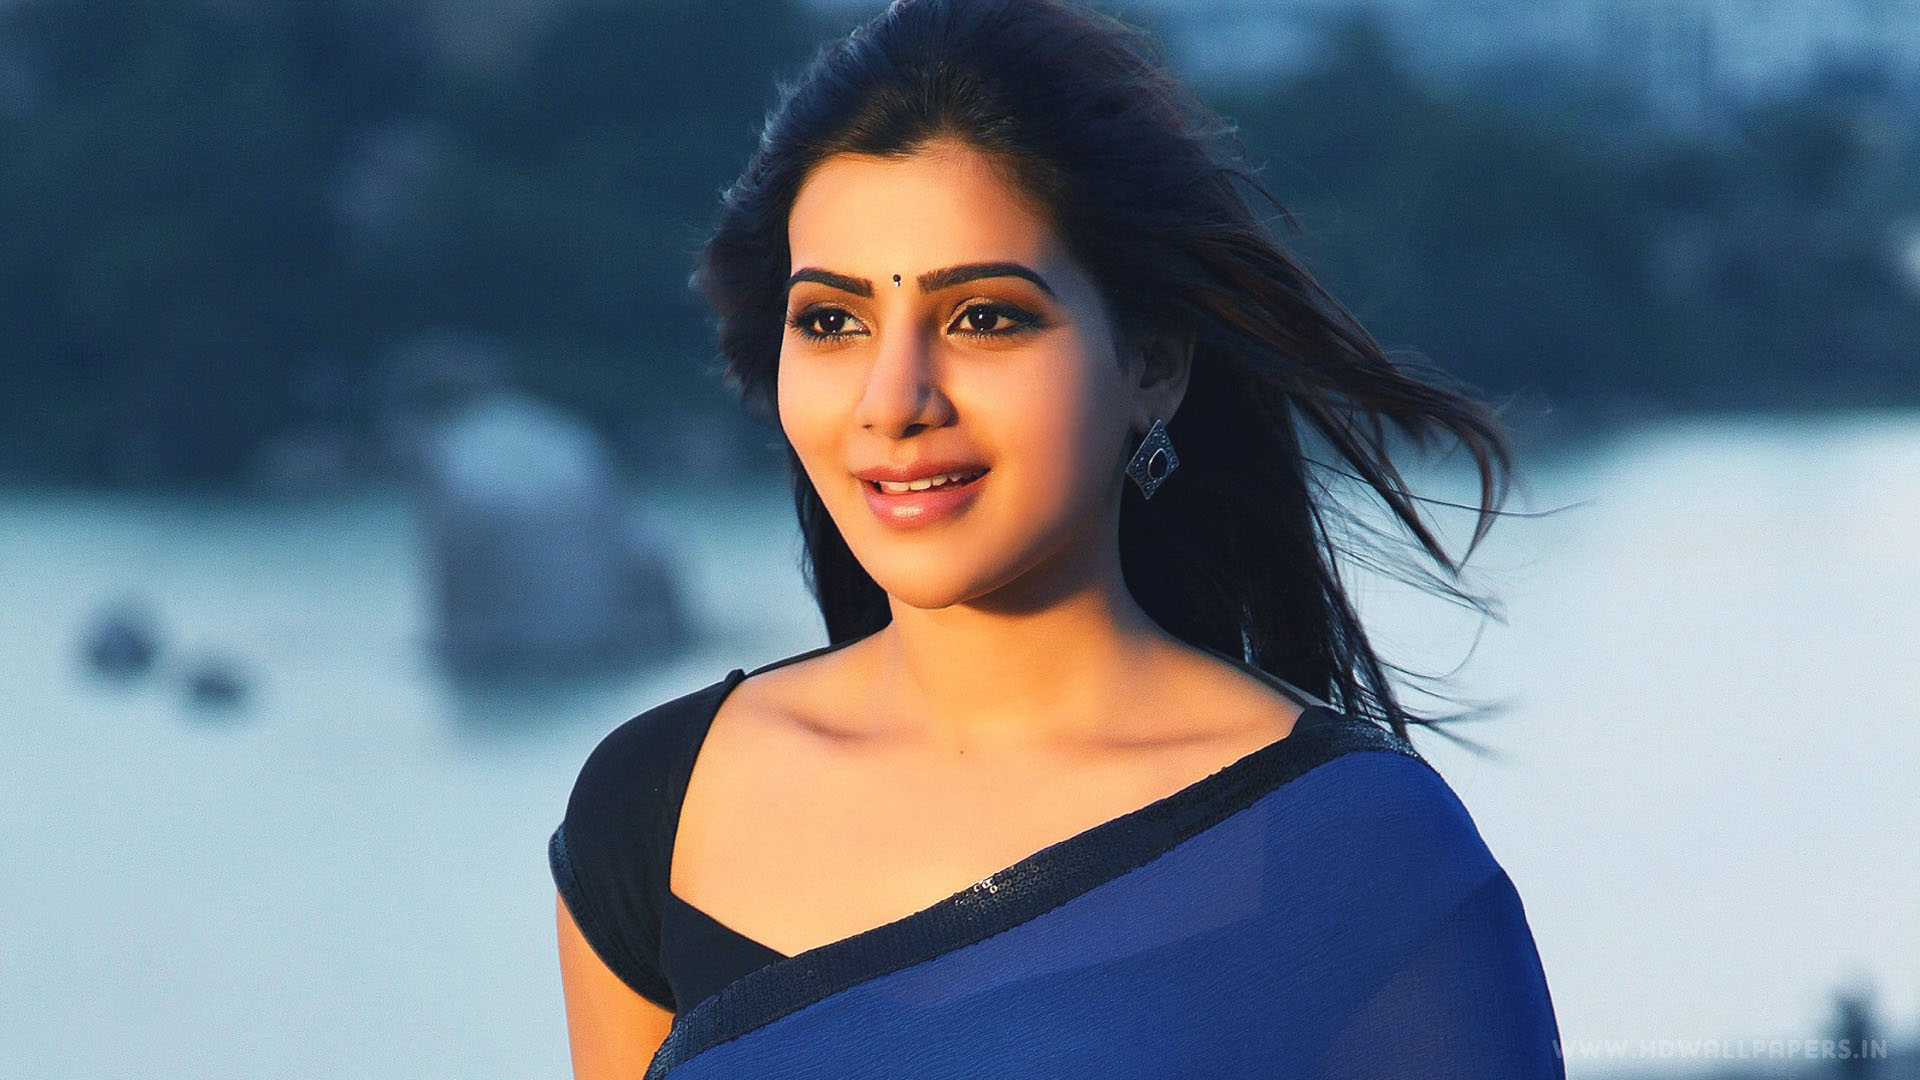 Wallpapers Of Indian Actress (64+)